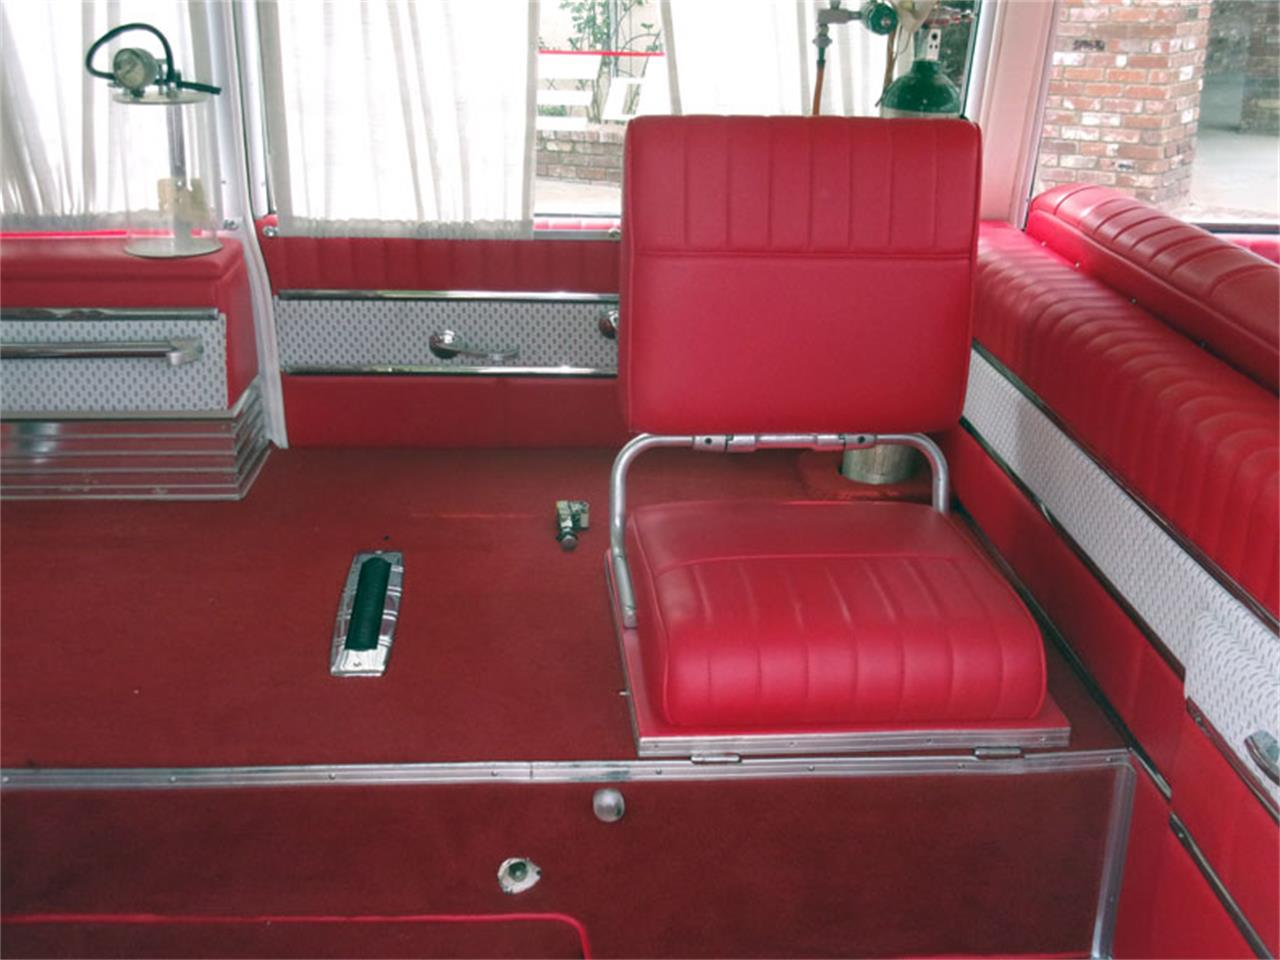 Large Picture of 1963 Cadillac Ambulance - $47,500.00 Offered by a Private Seller - PRVK